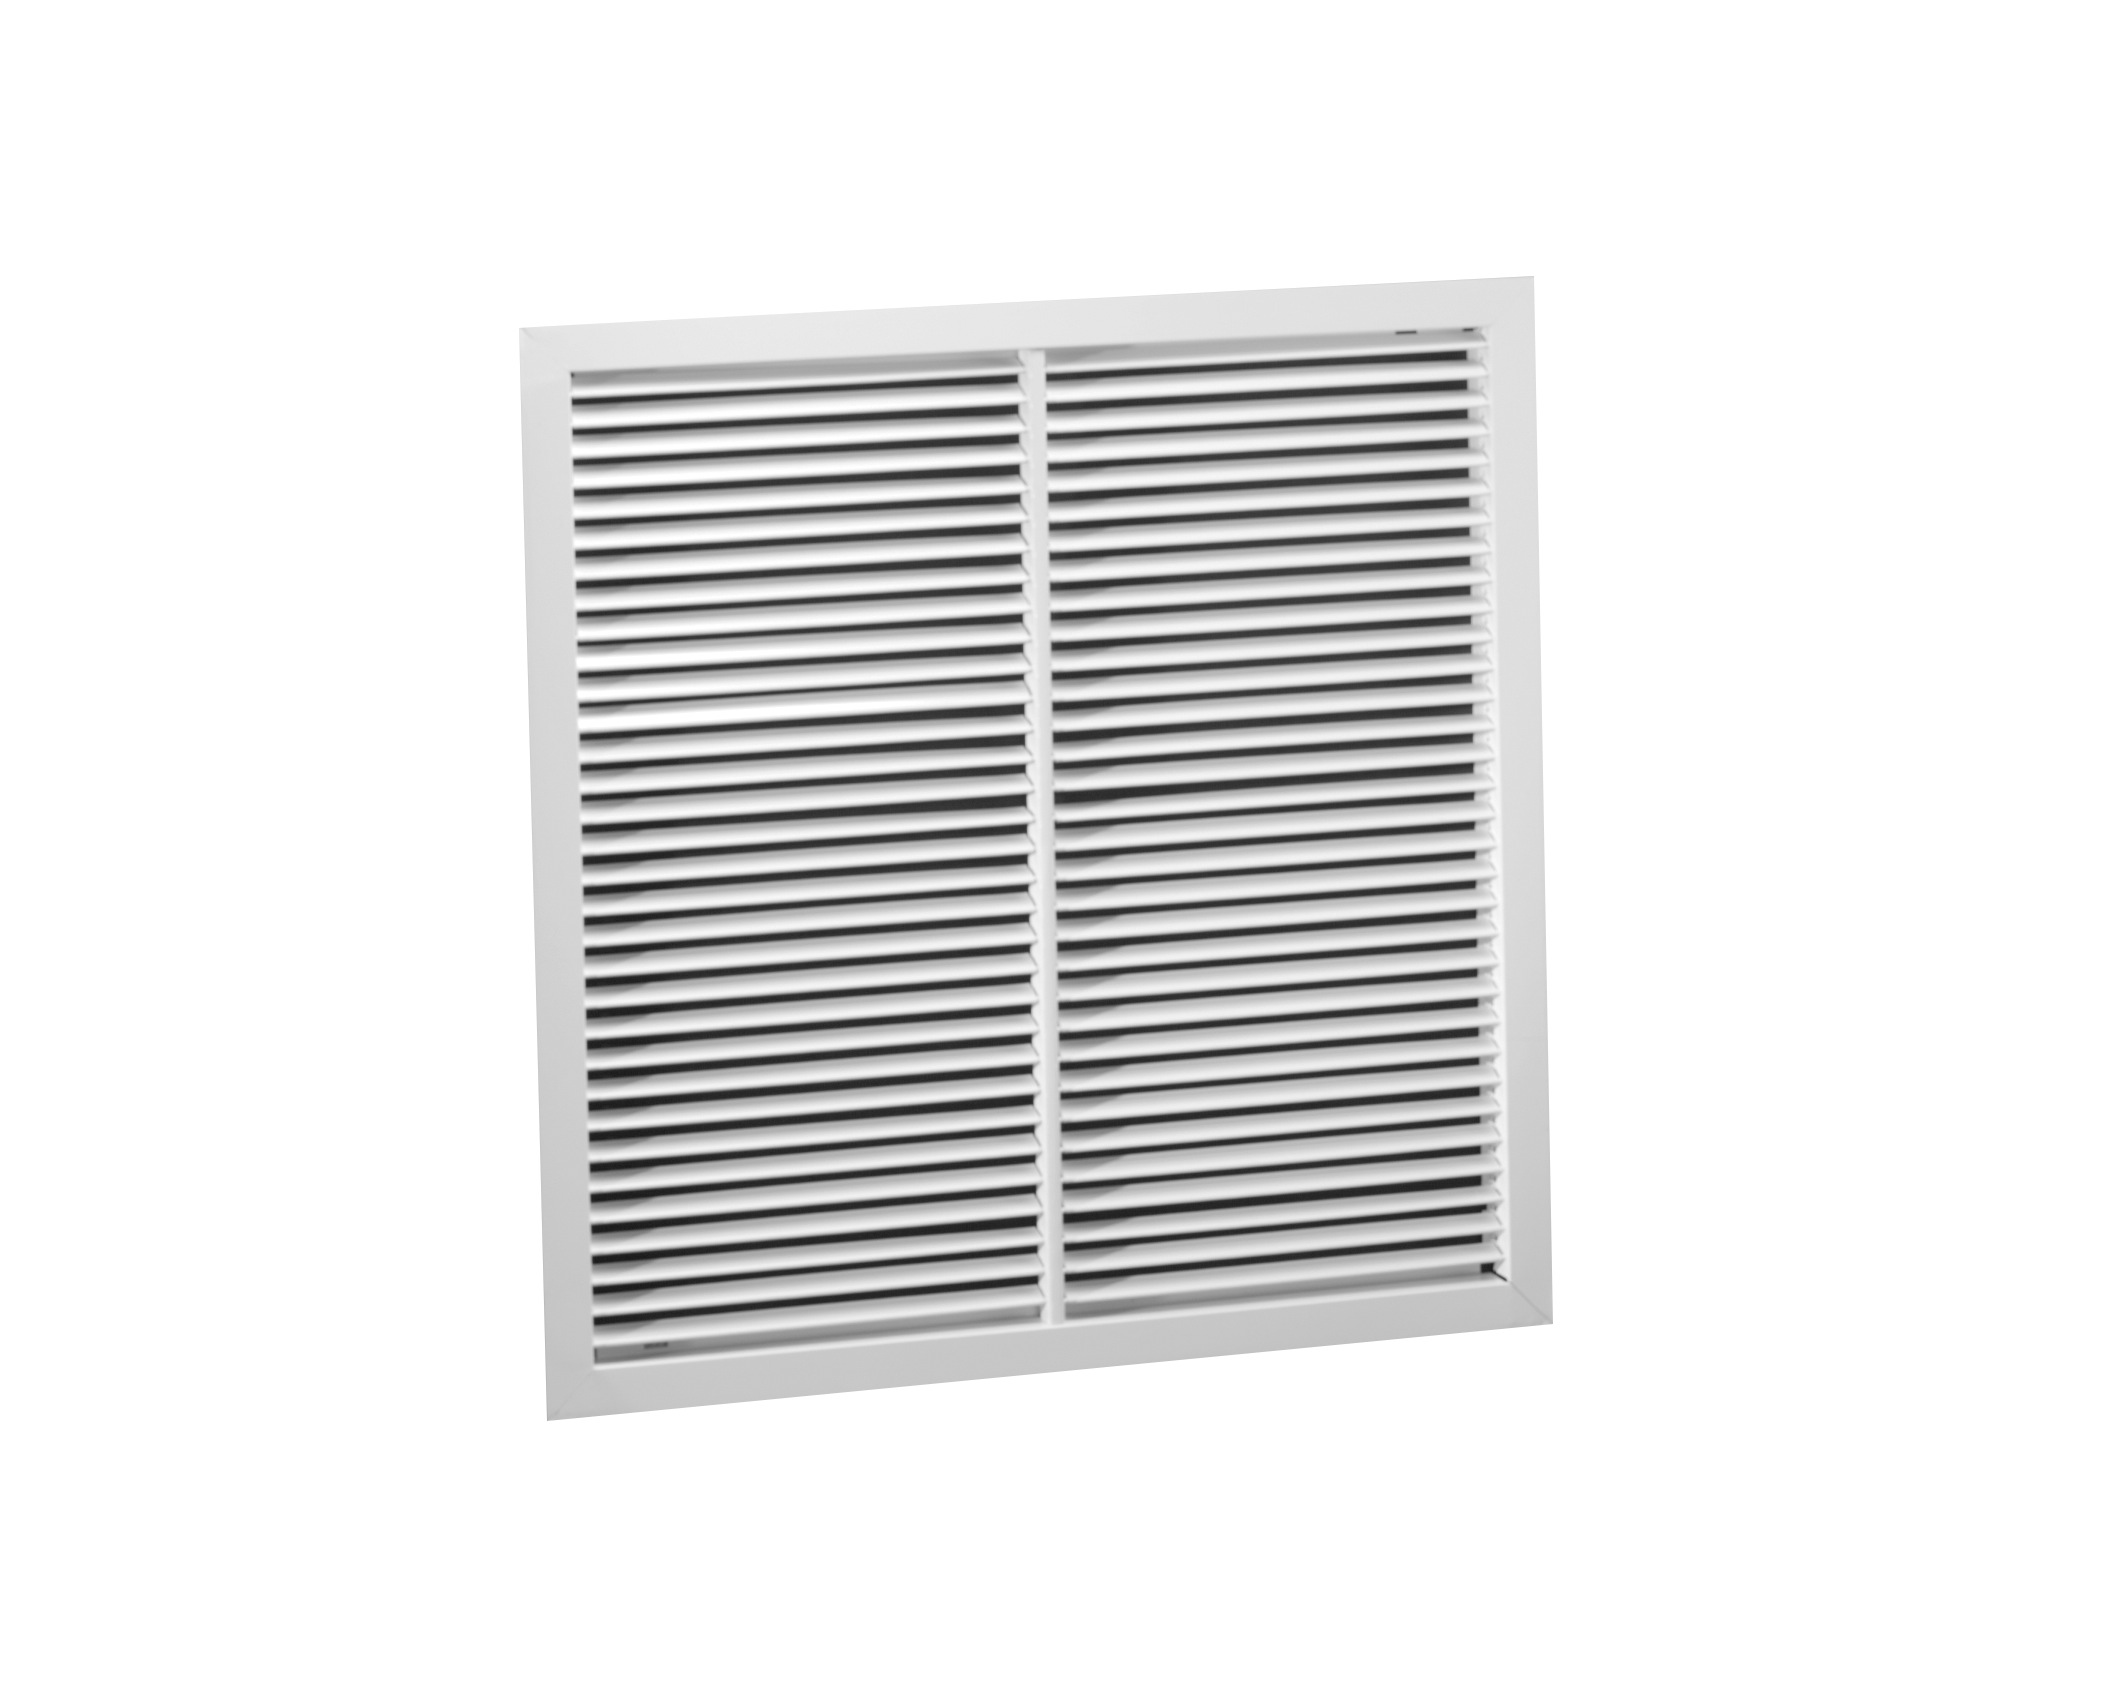 Tb280 Steel Fixed Bar Style Return Grille Airmate